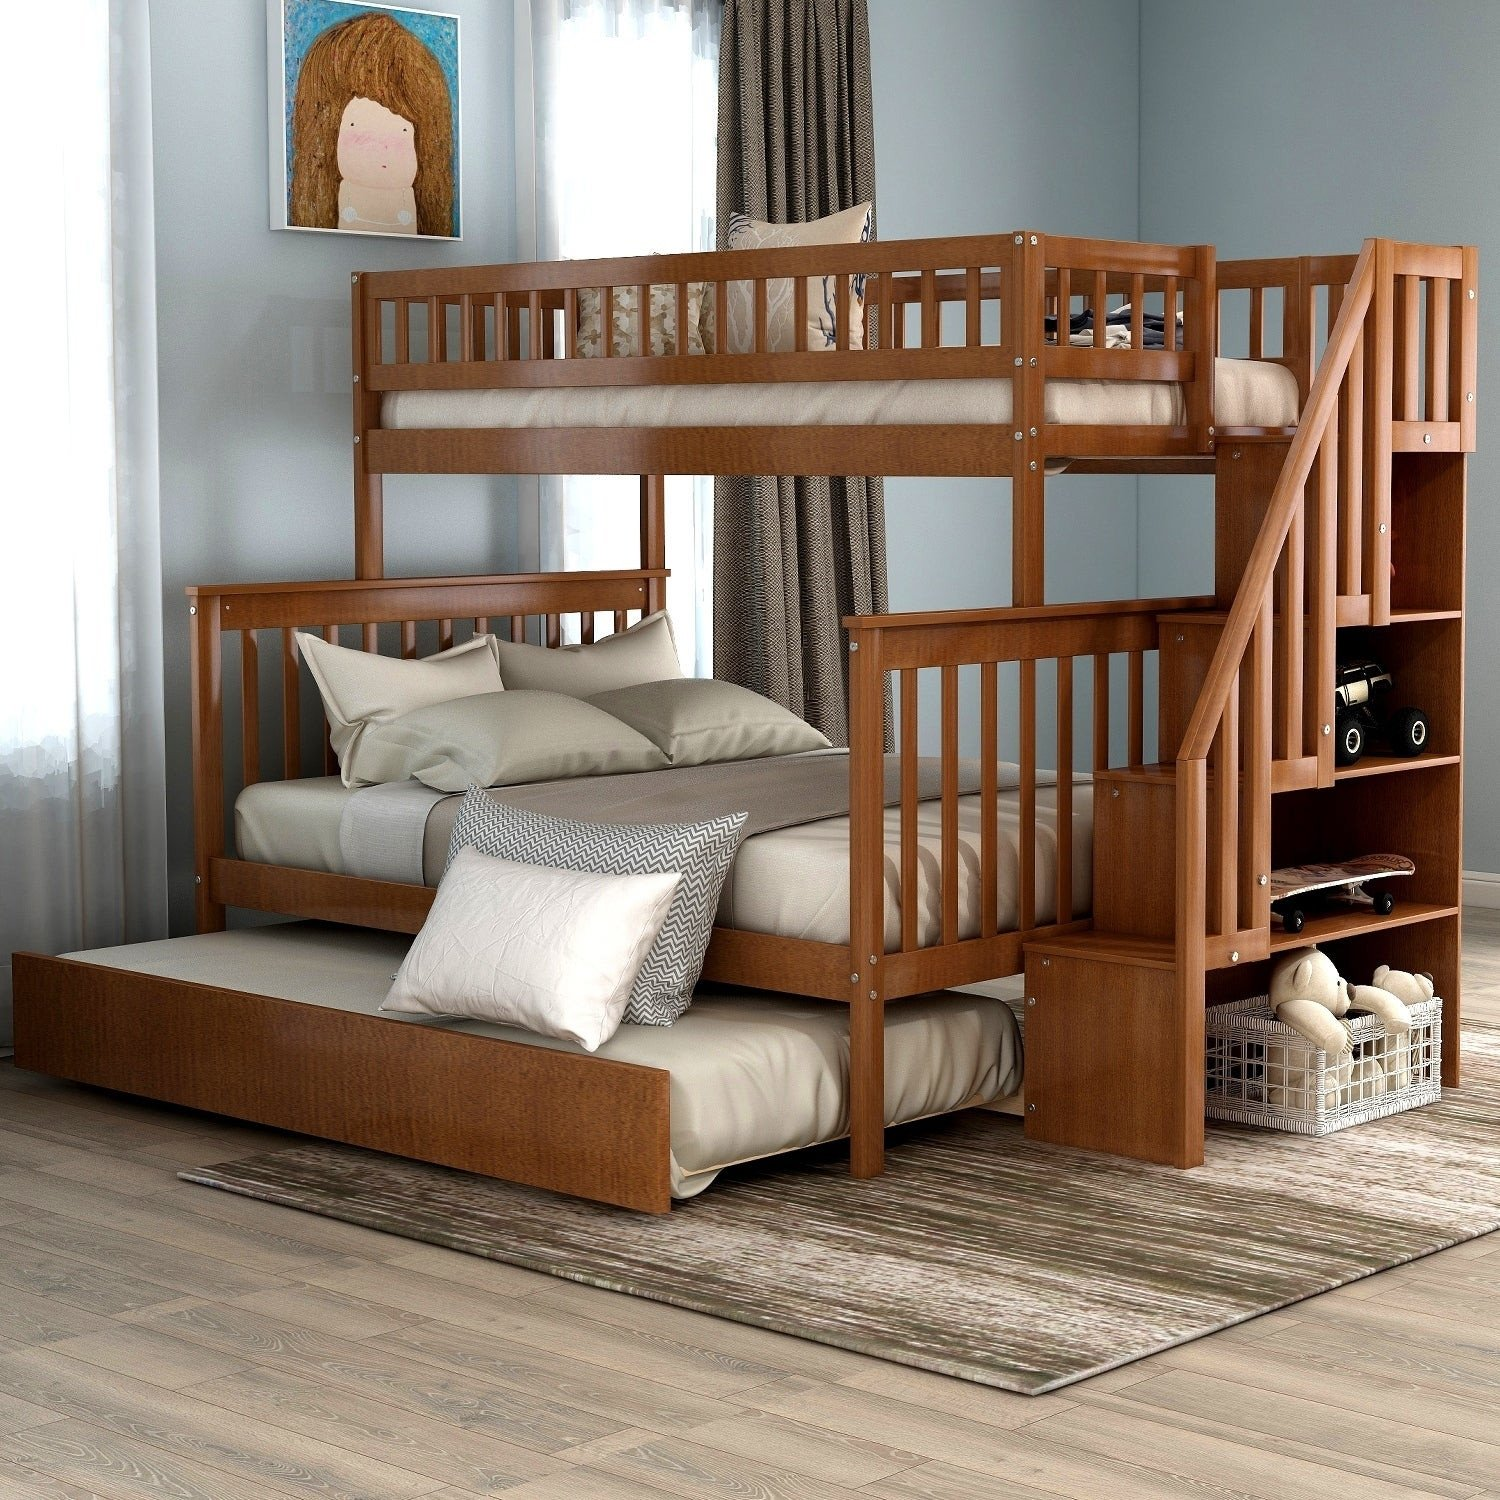 Twin Trundle Bedroom Set Inspirational Taylor & Olive Freesia Twin Over Full Stairway Bunk Bed with Trundle